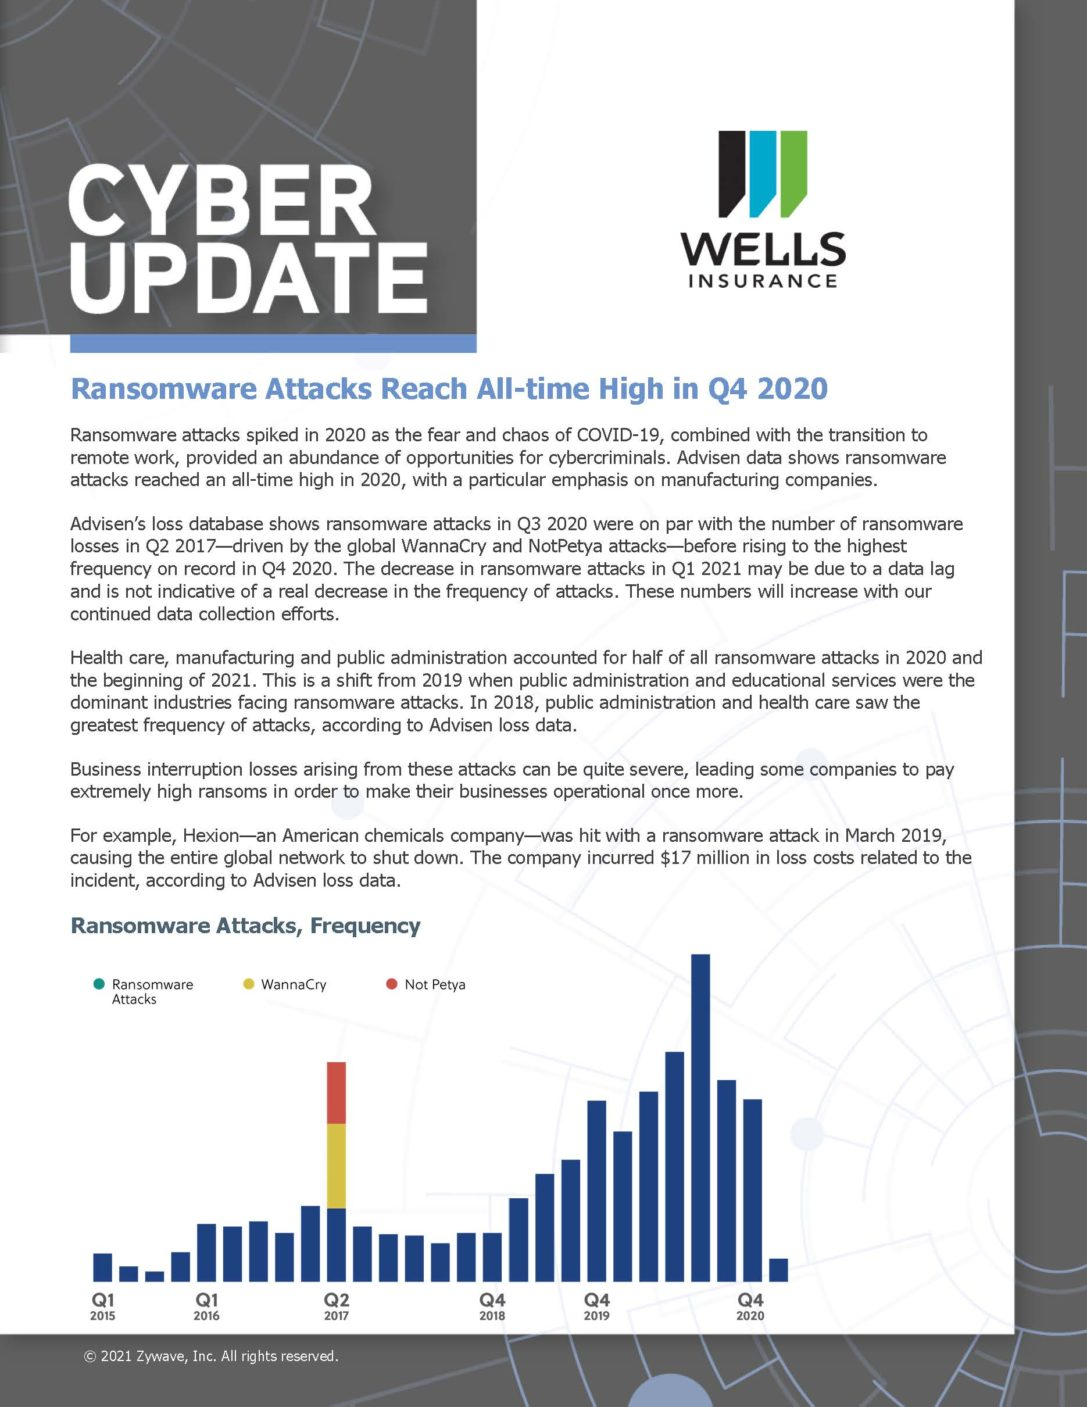 The Frequency of Ransomware Attacks in Q4 2020